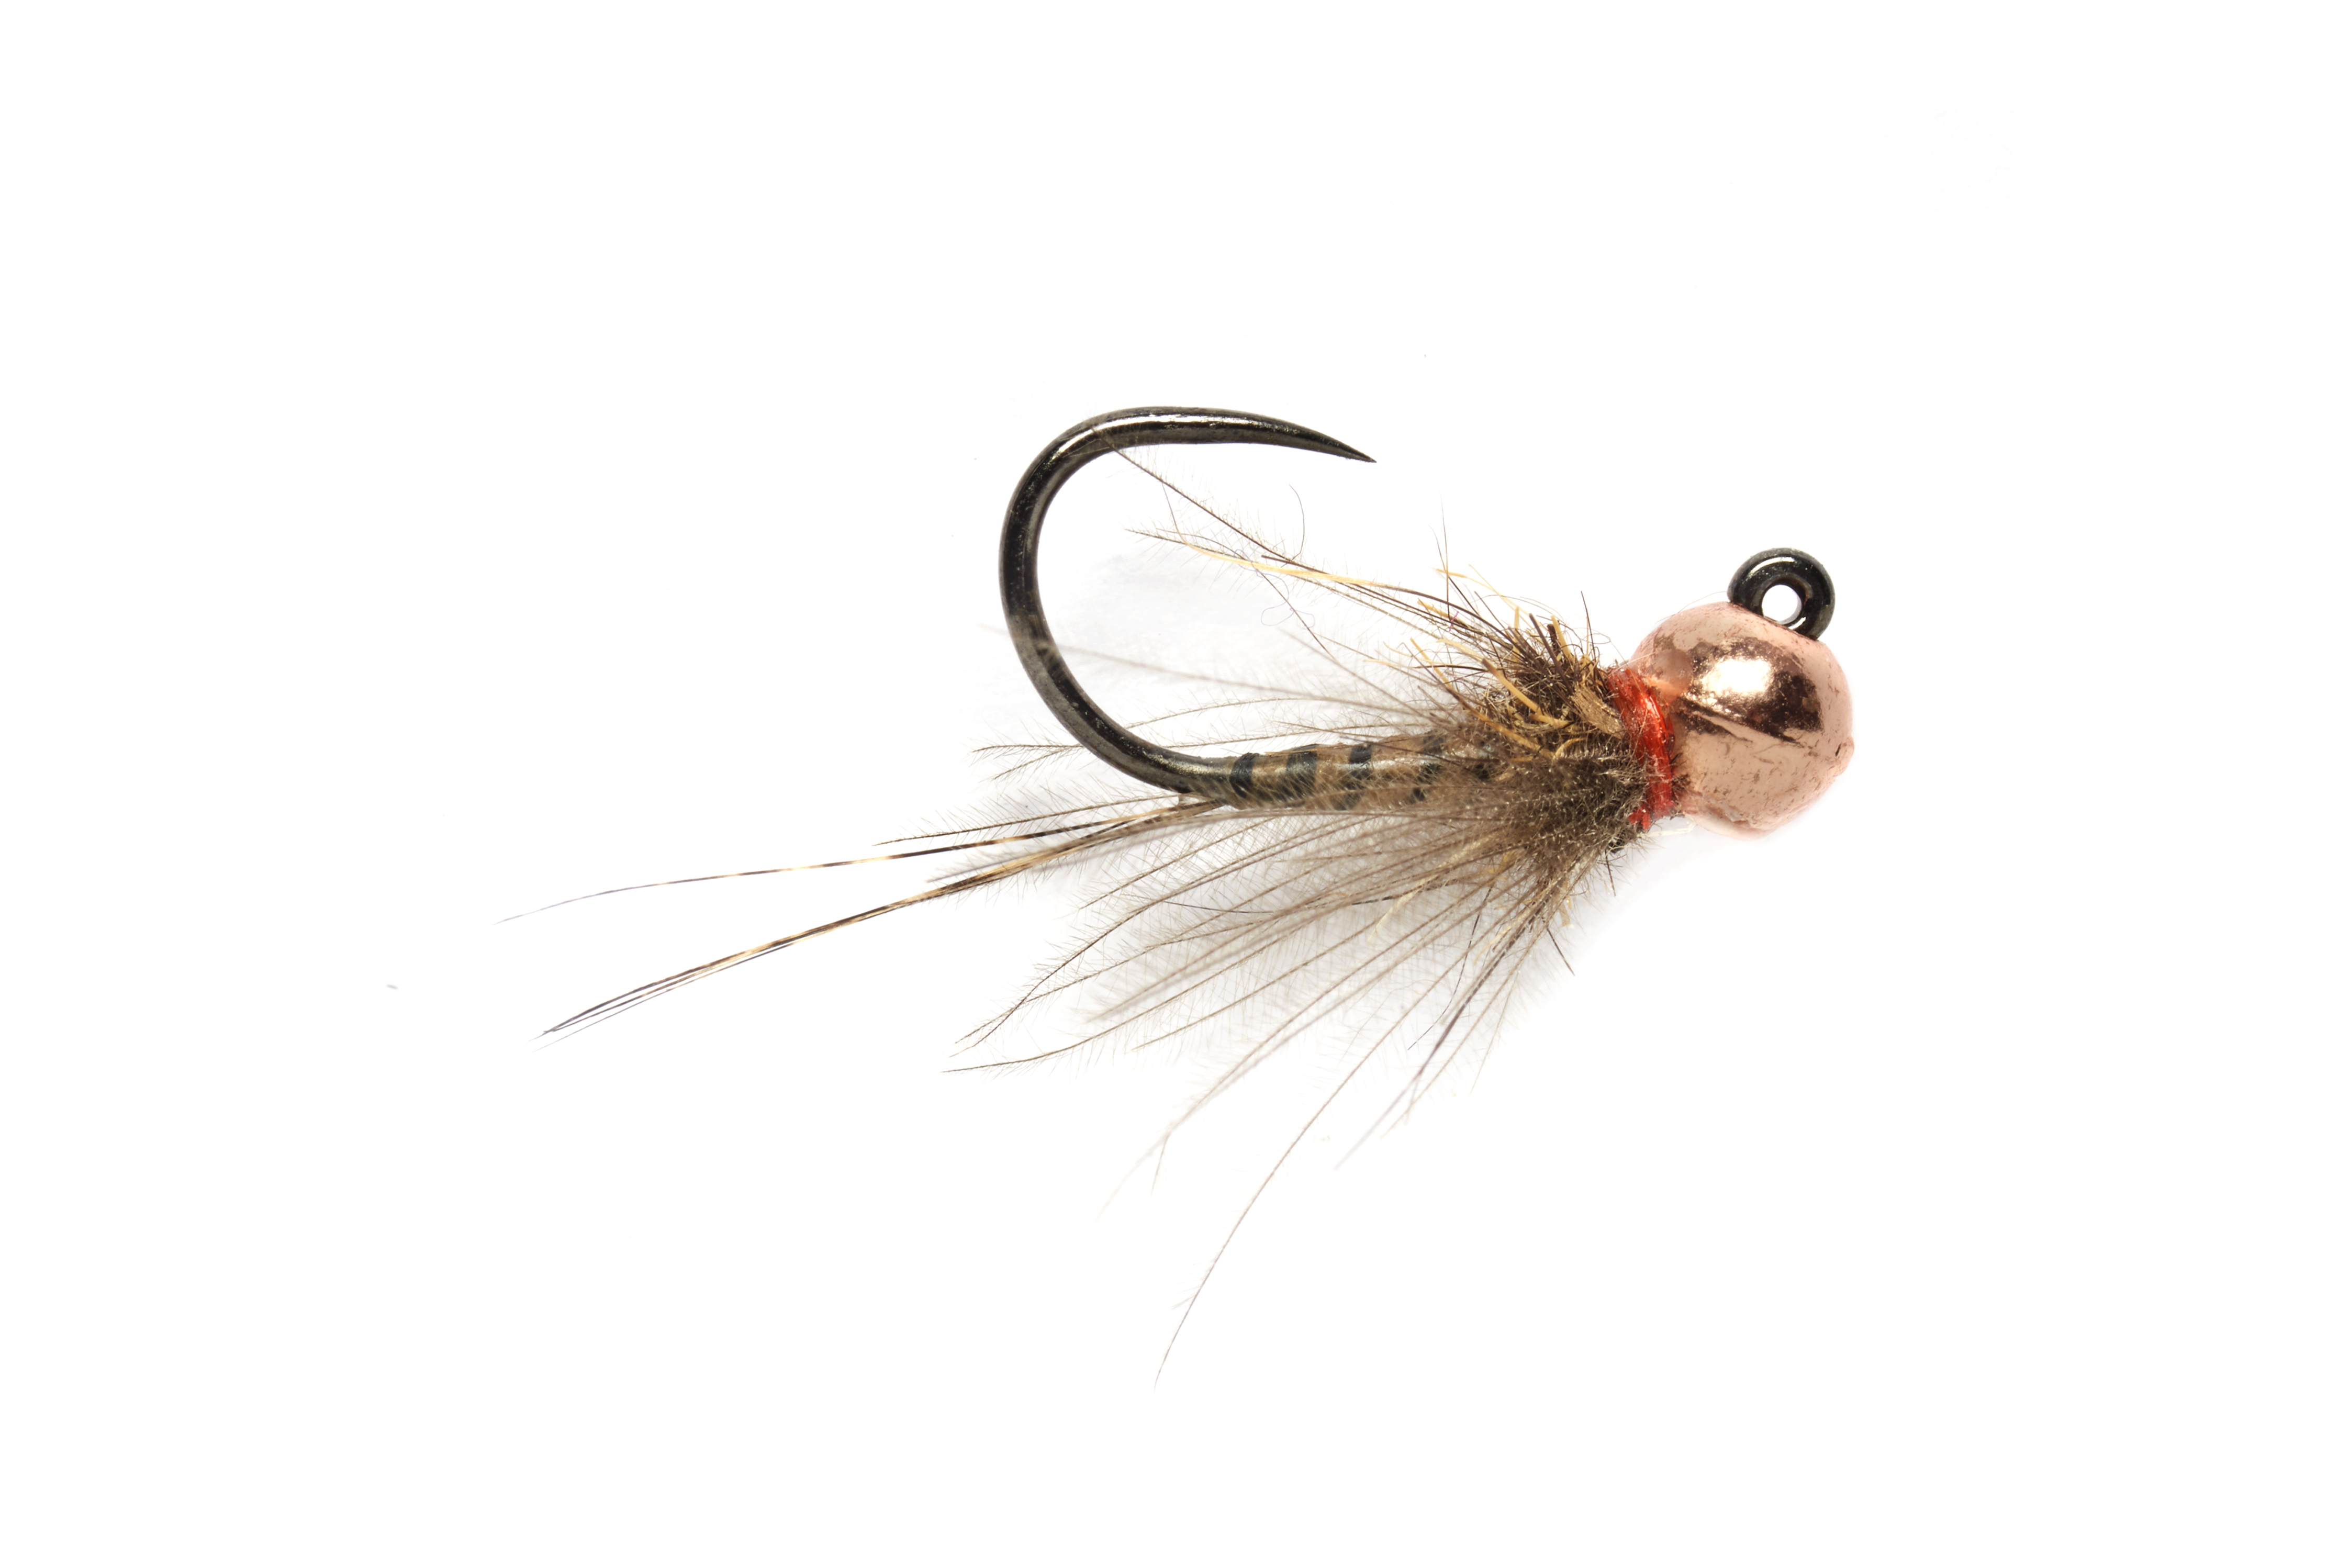 Croston's Thread Quill Copper Bead Barbless